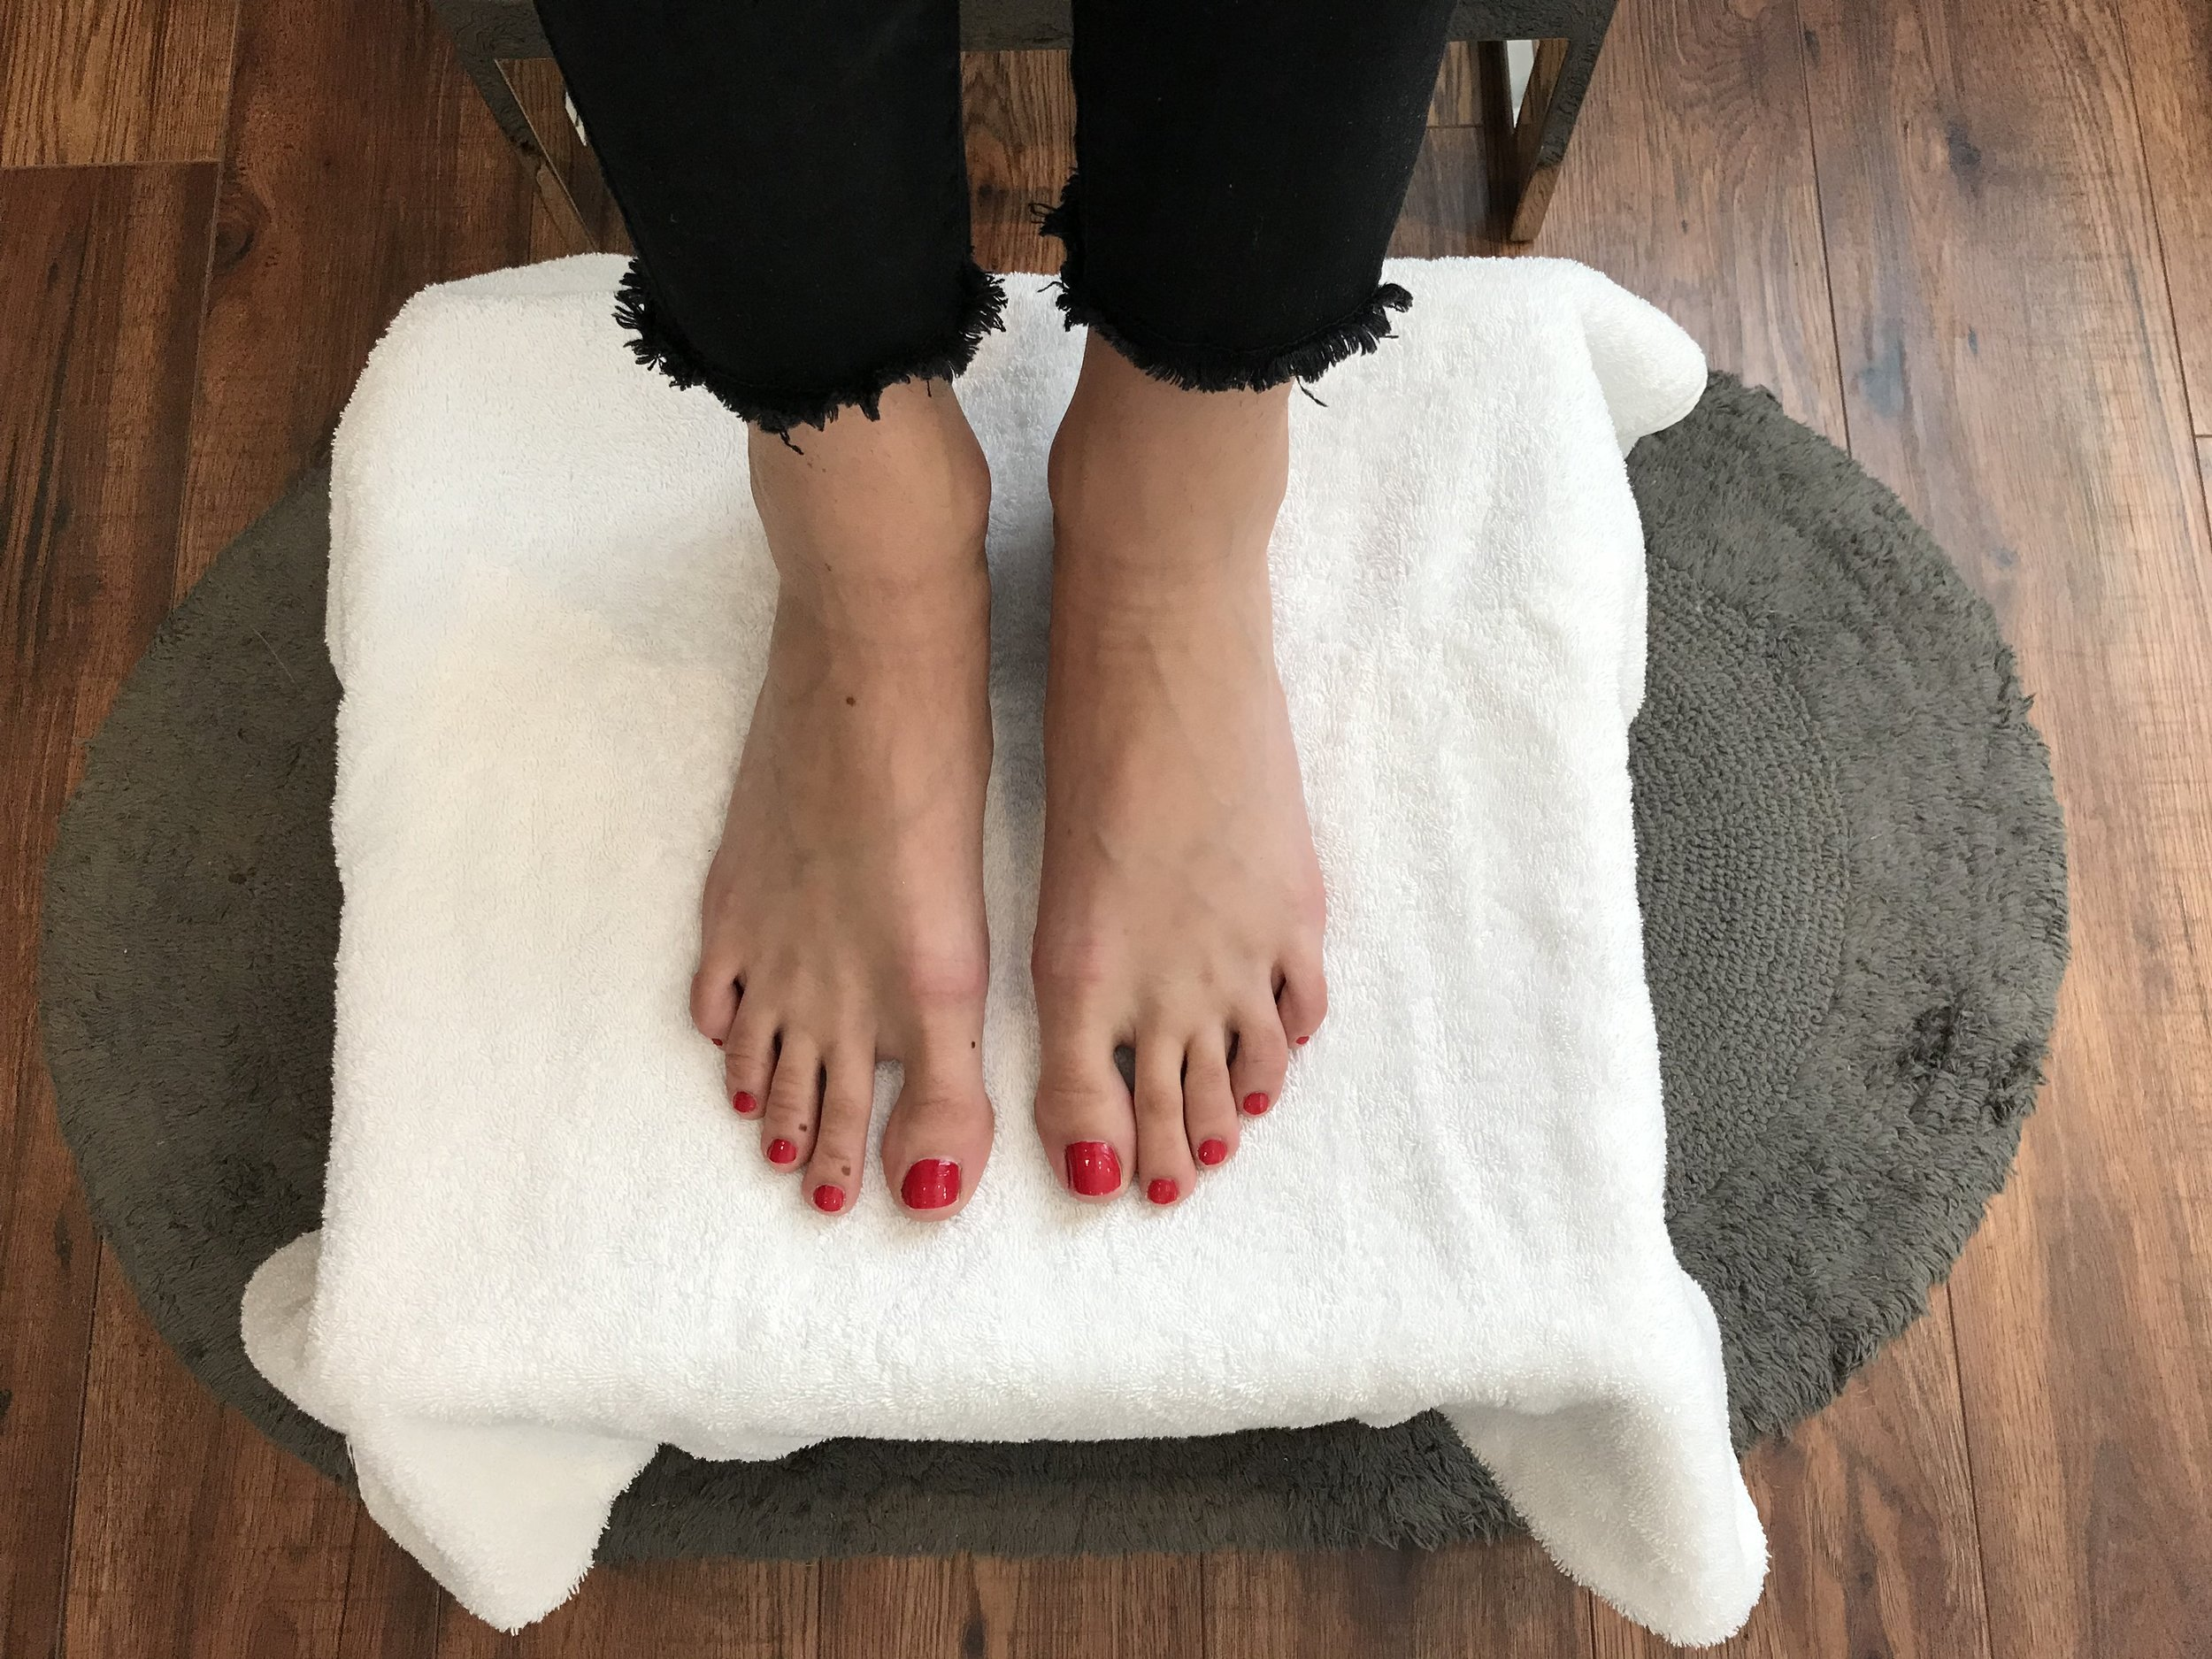 pedicure-home-spa.jpg